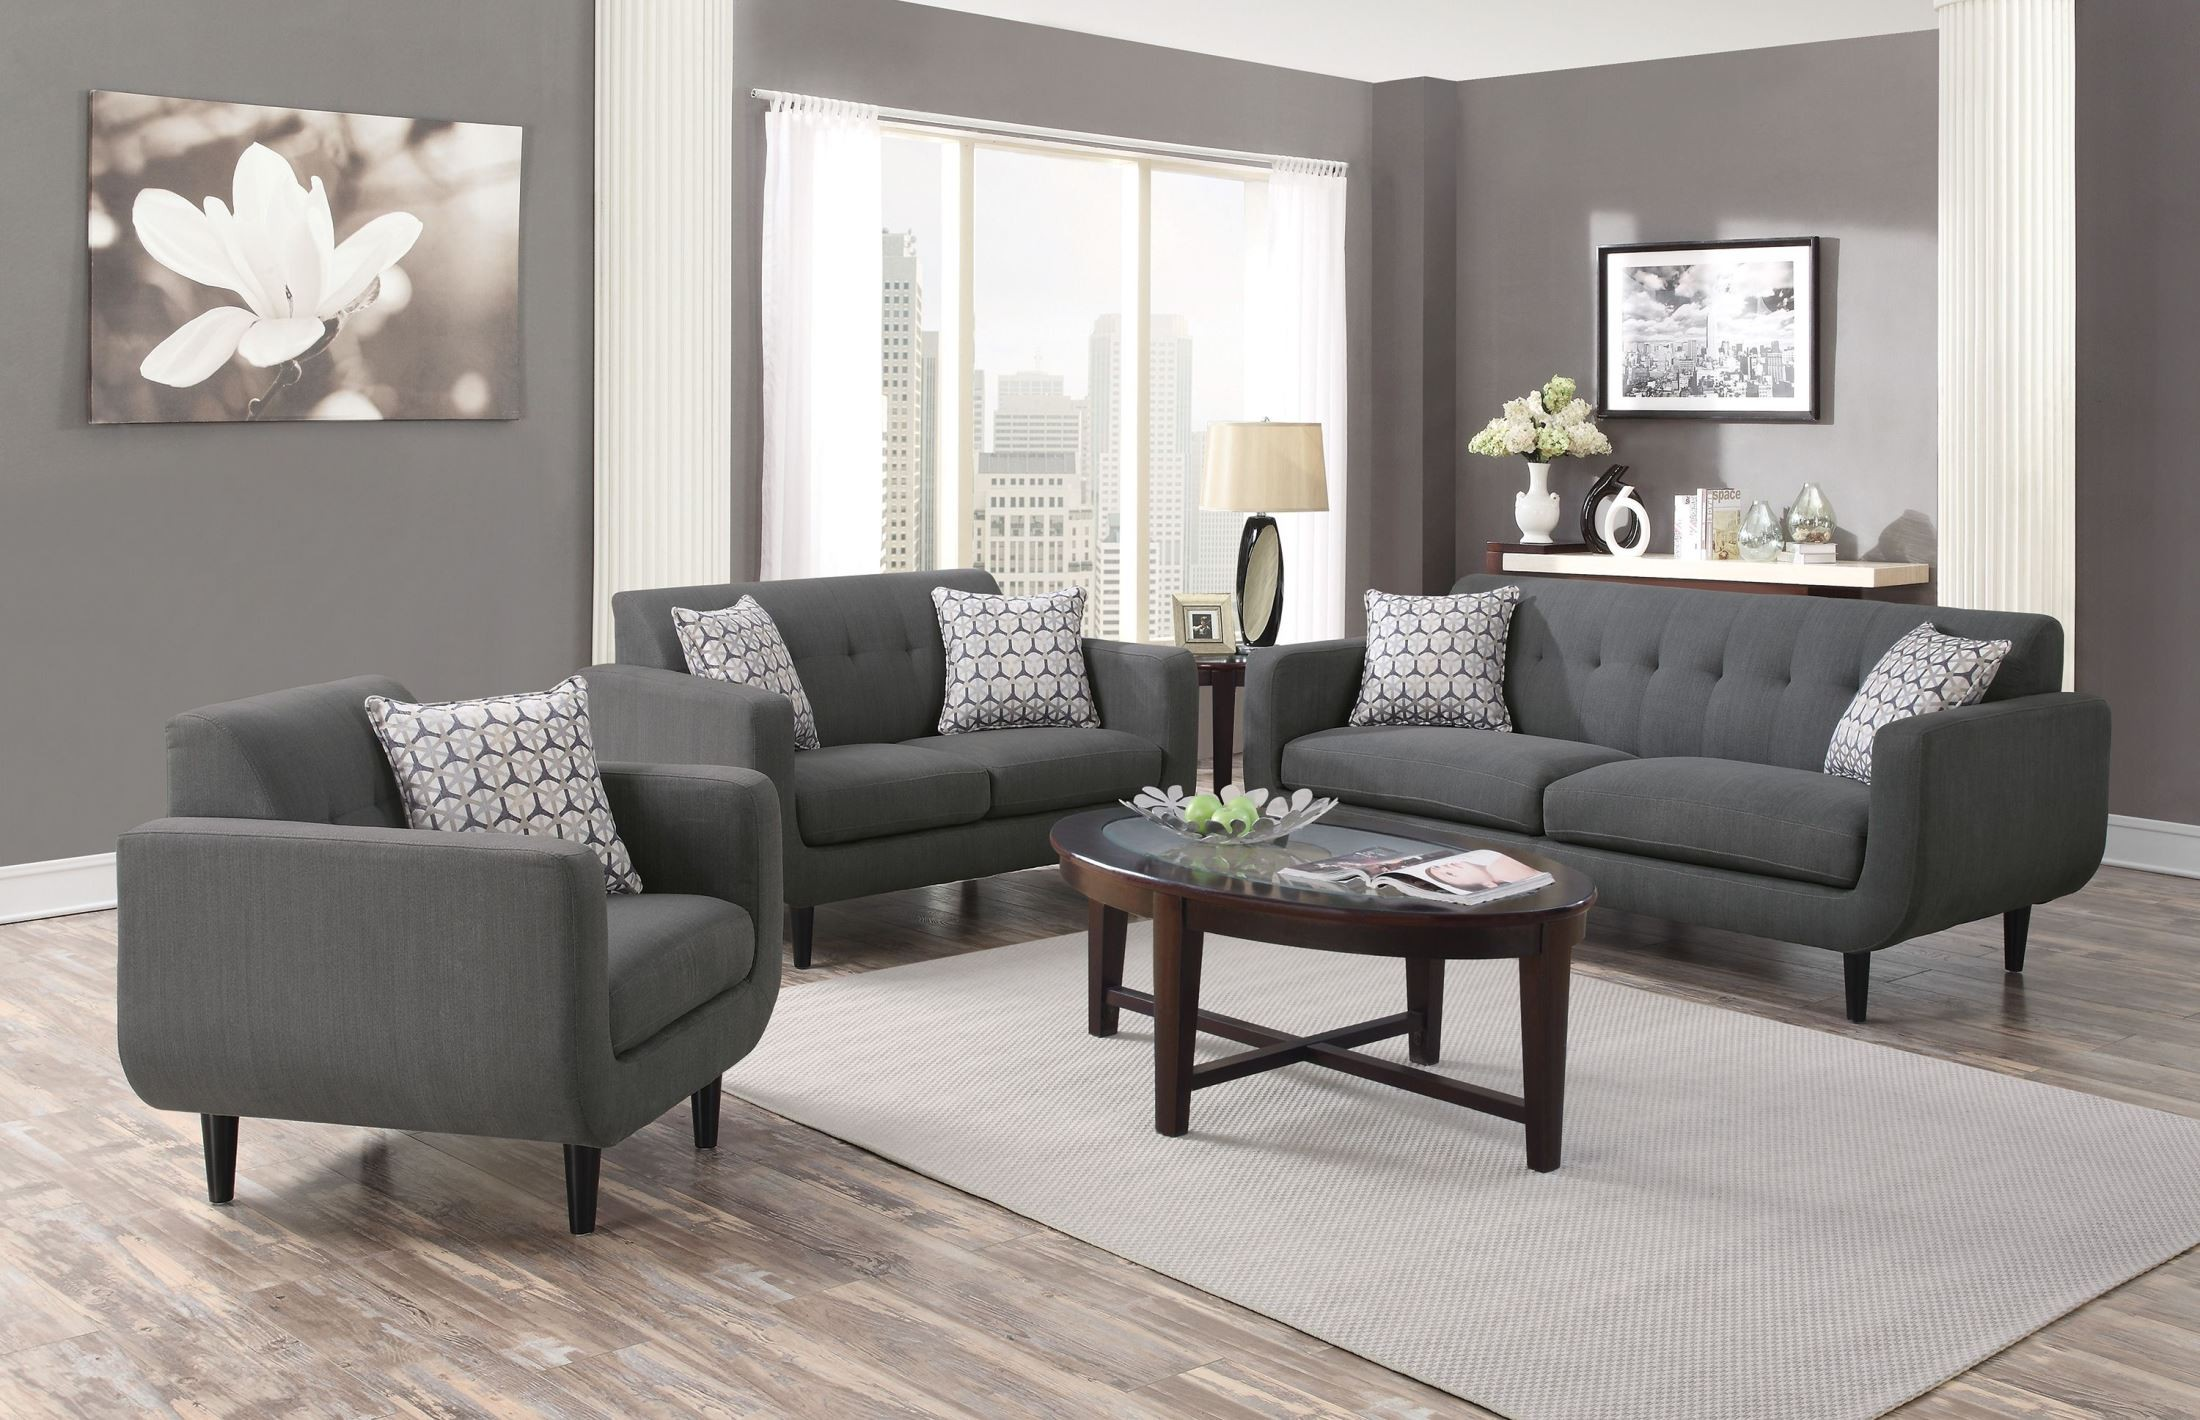 Stansall grey living room set 505201 coaster for Living room sofa sets